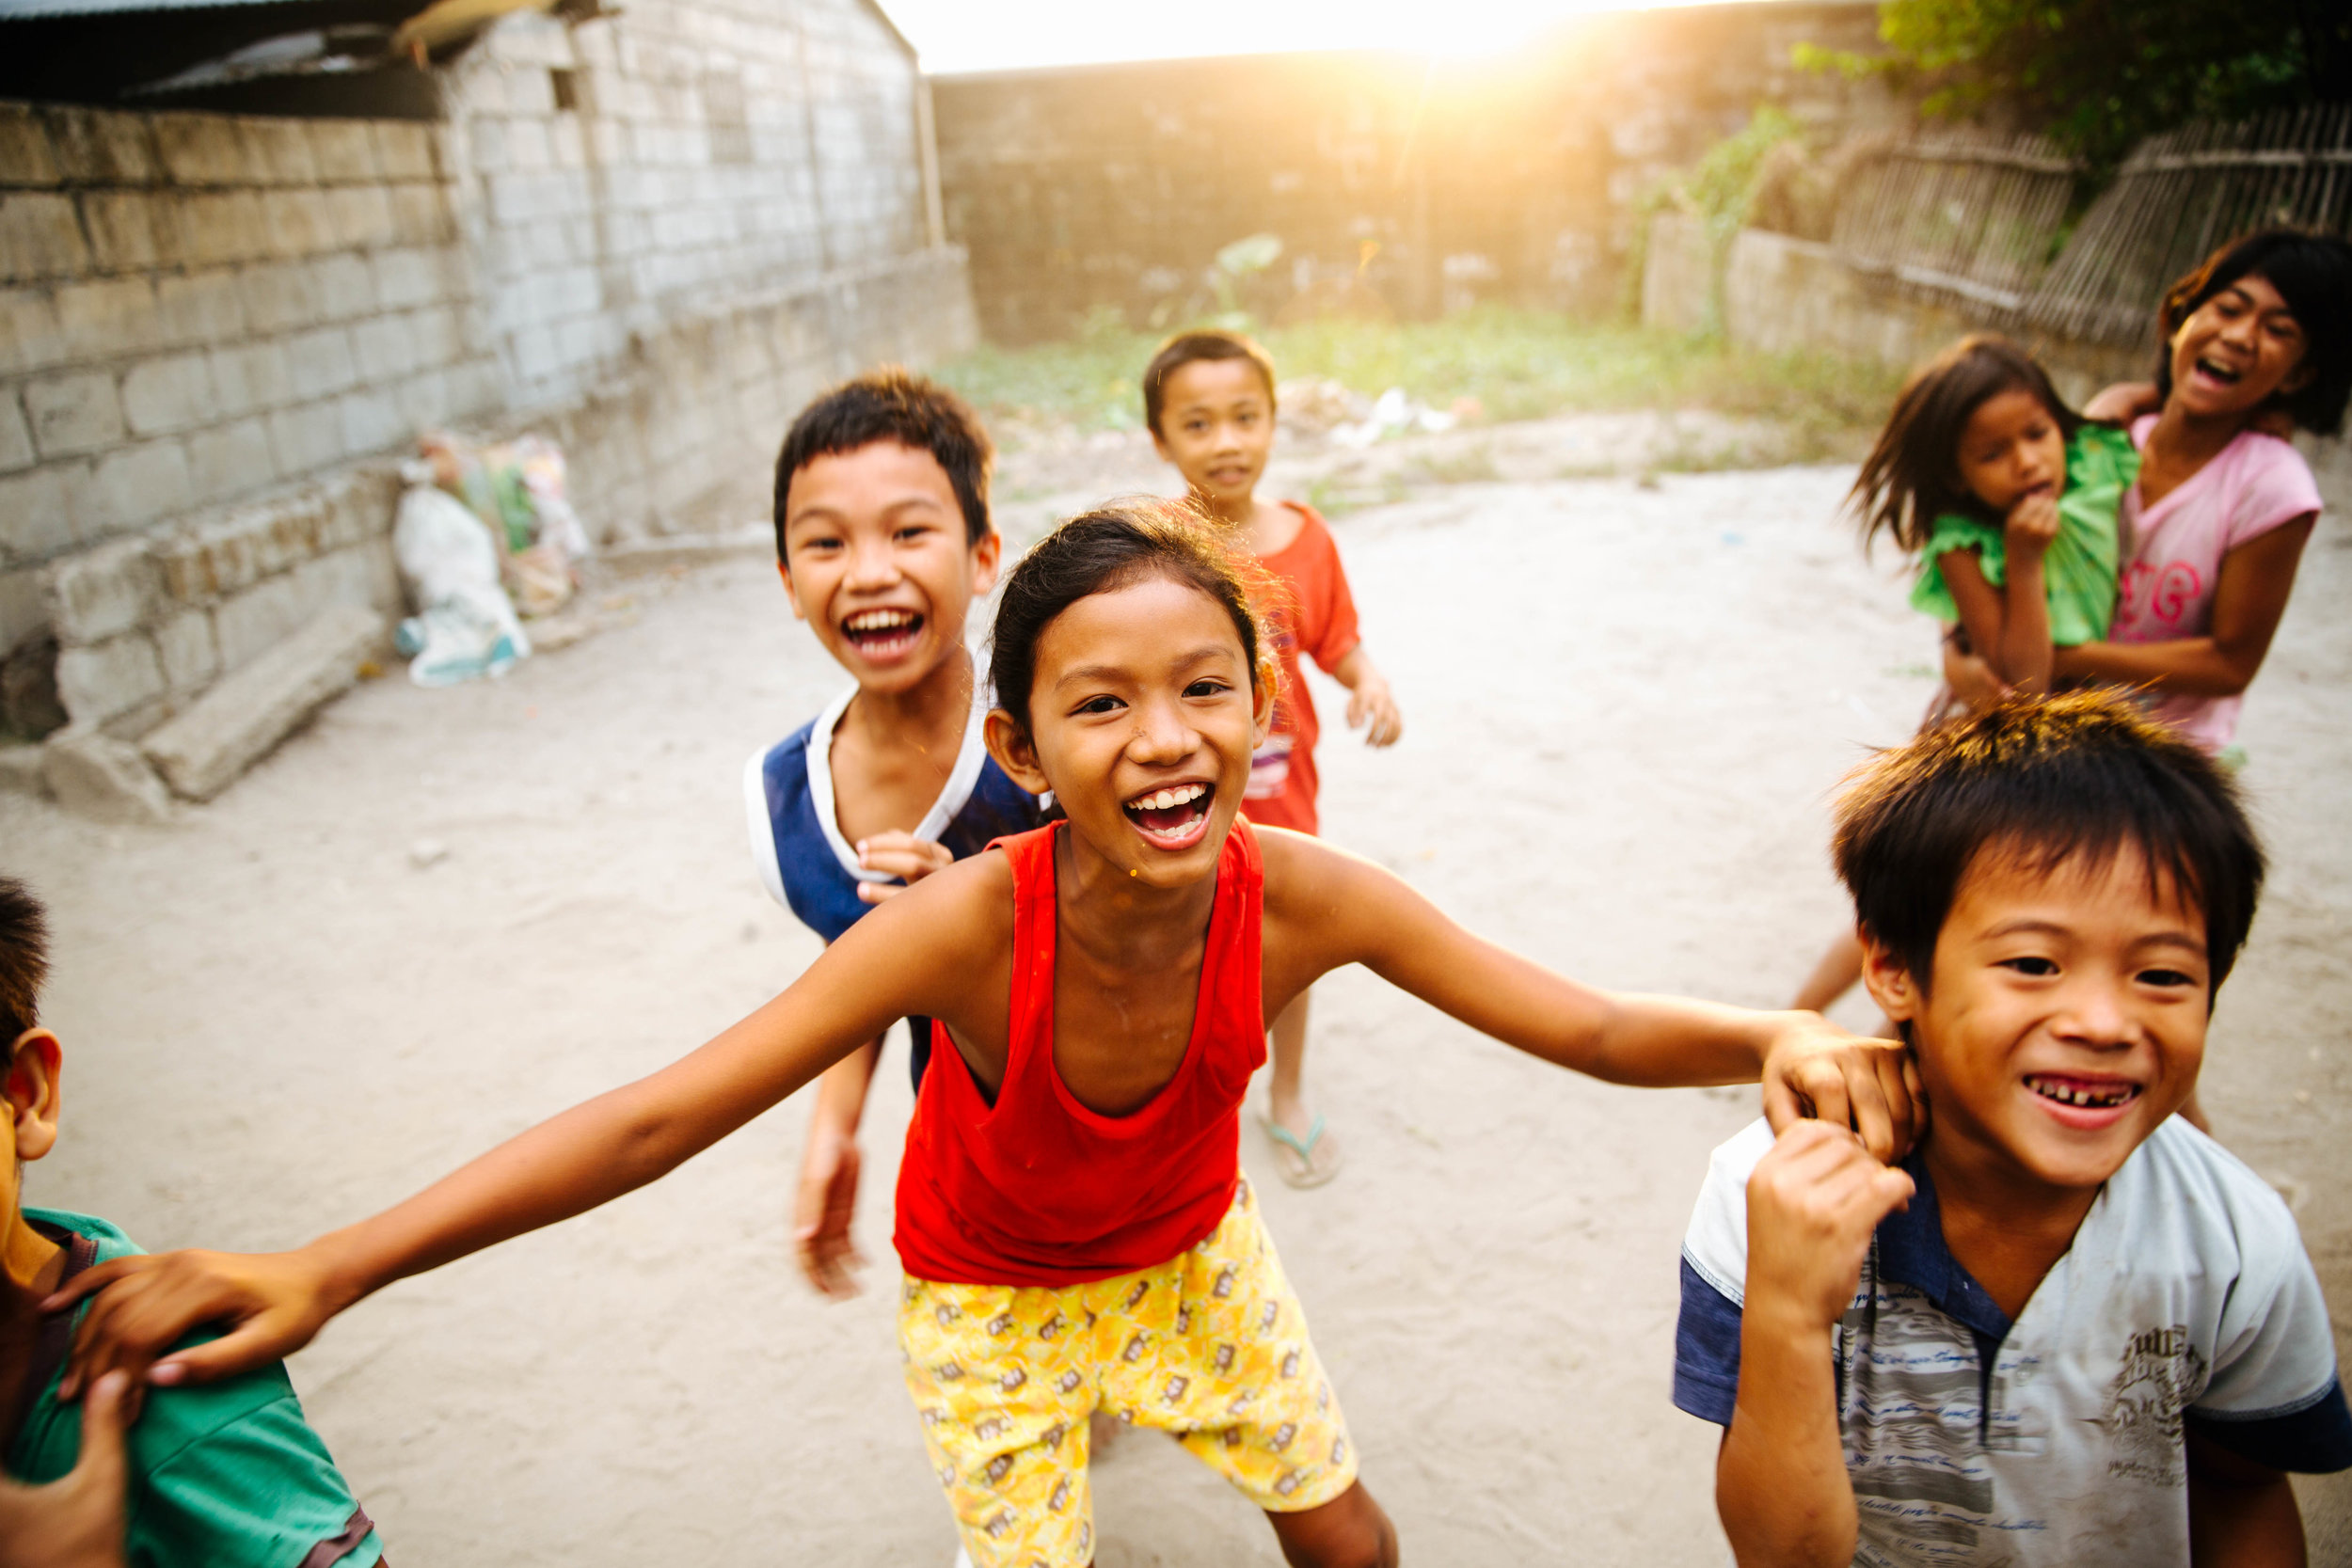 Agape International Missions - With 12 programs on the ground in Cambodia impacting over 10,000 people every year, AIM is holistically stopping the cycle of exploitation by preventing human trafficking and rescuing, restoring and reintegrating survivors.